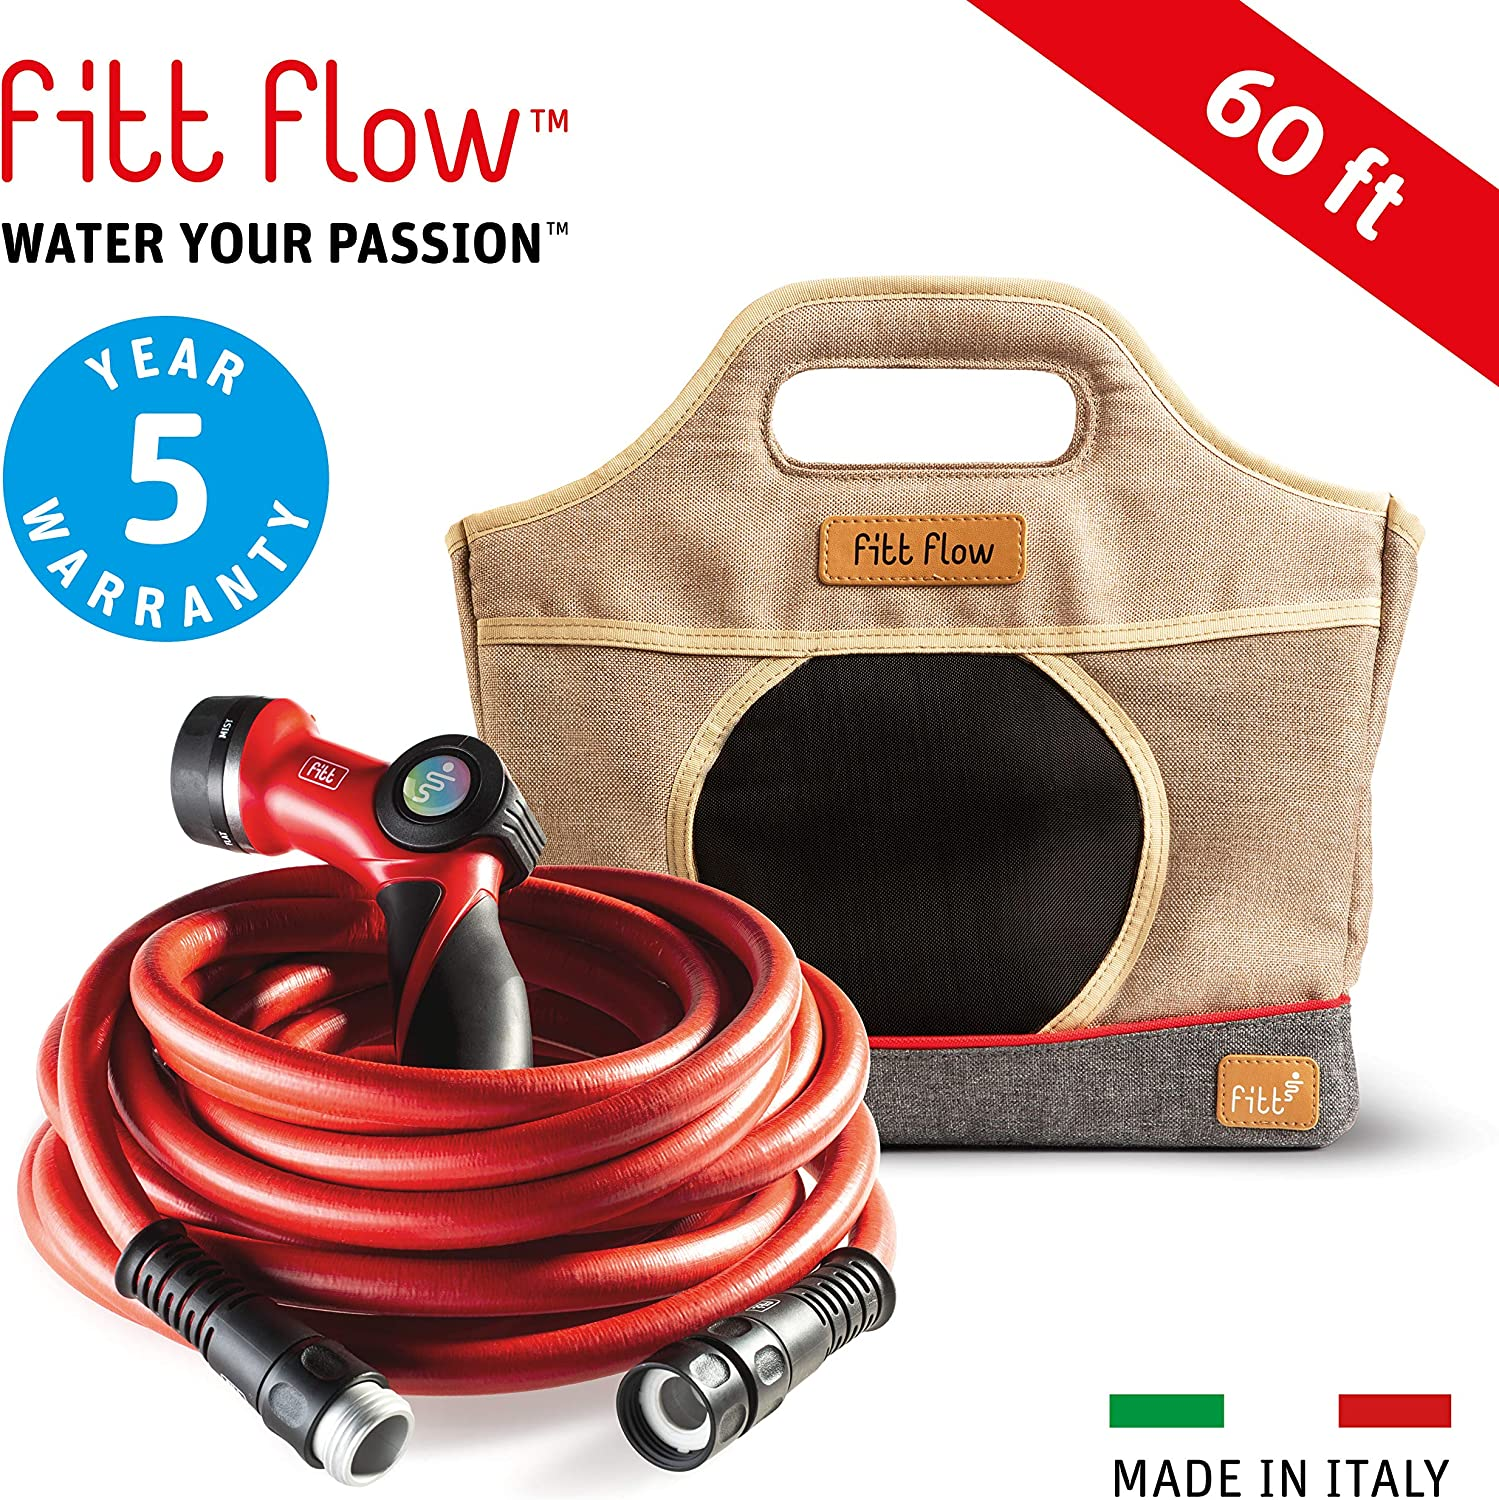 FITT Flow Expandable 60 ft Patio Garden Hose Made in Italy, 6 Layers Lightweight Flexible Hybrid polimer, riparable, from 30 ft Over 50 ft, 3X Lighter Than Others, Multi-Pattern Nozzle & Storage Bag